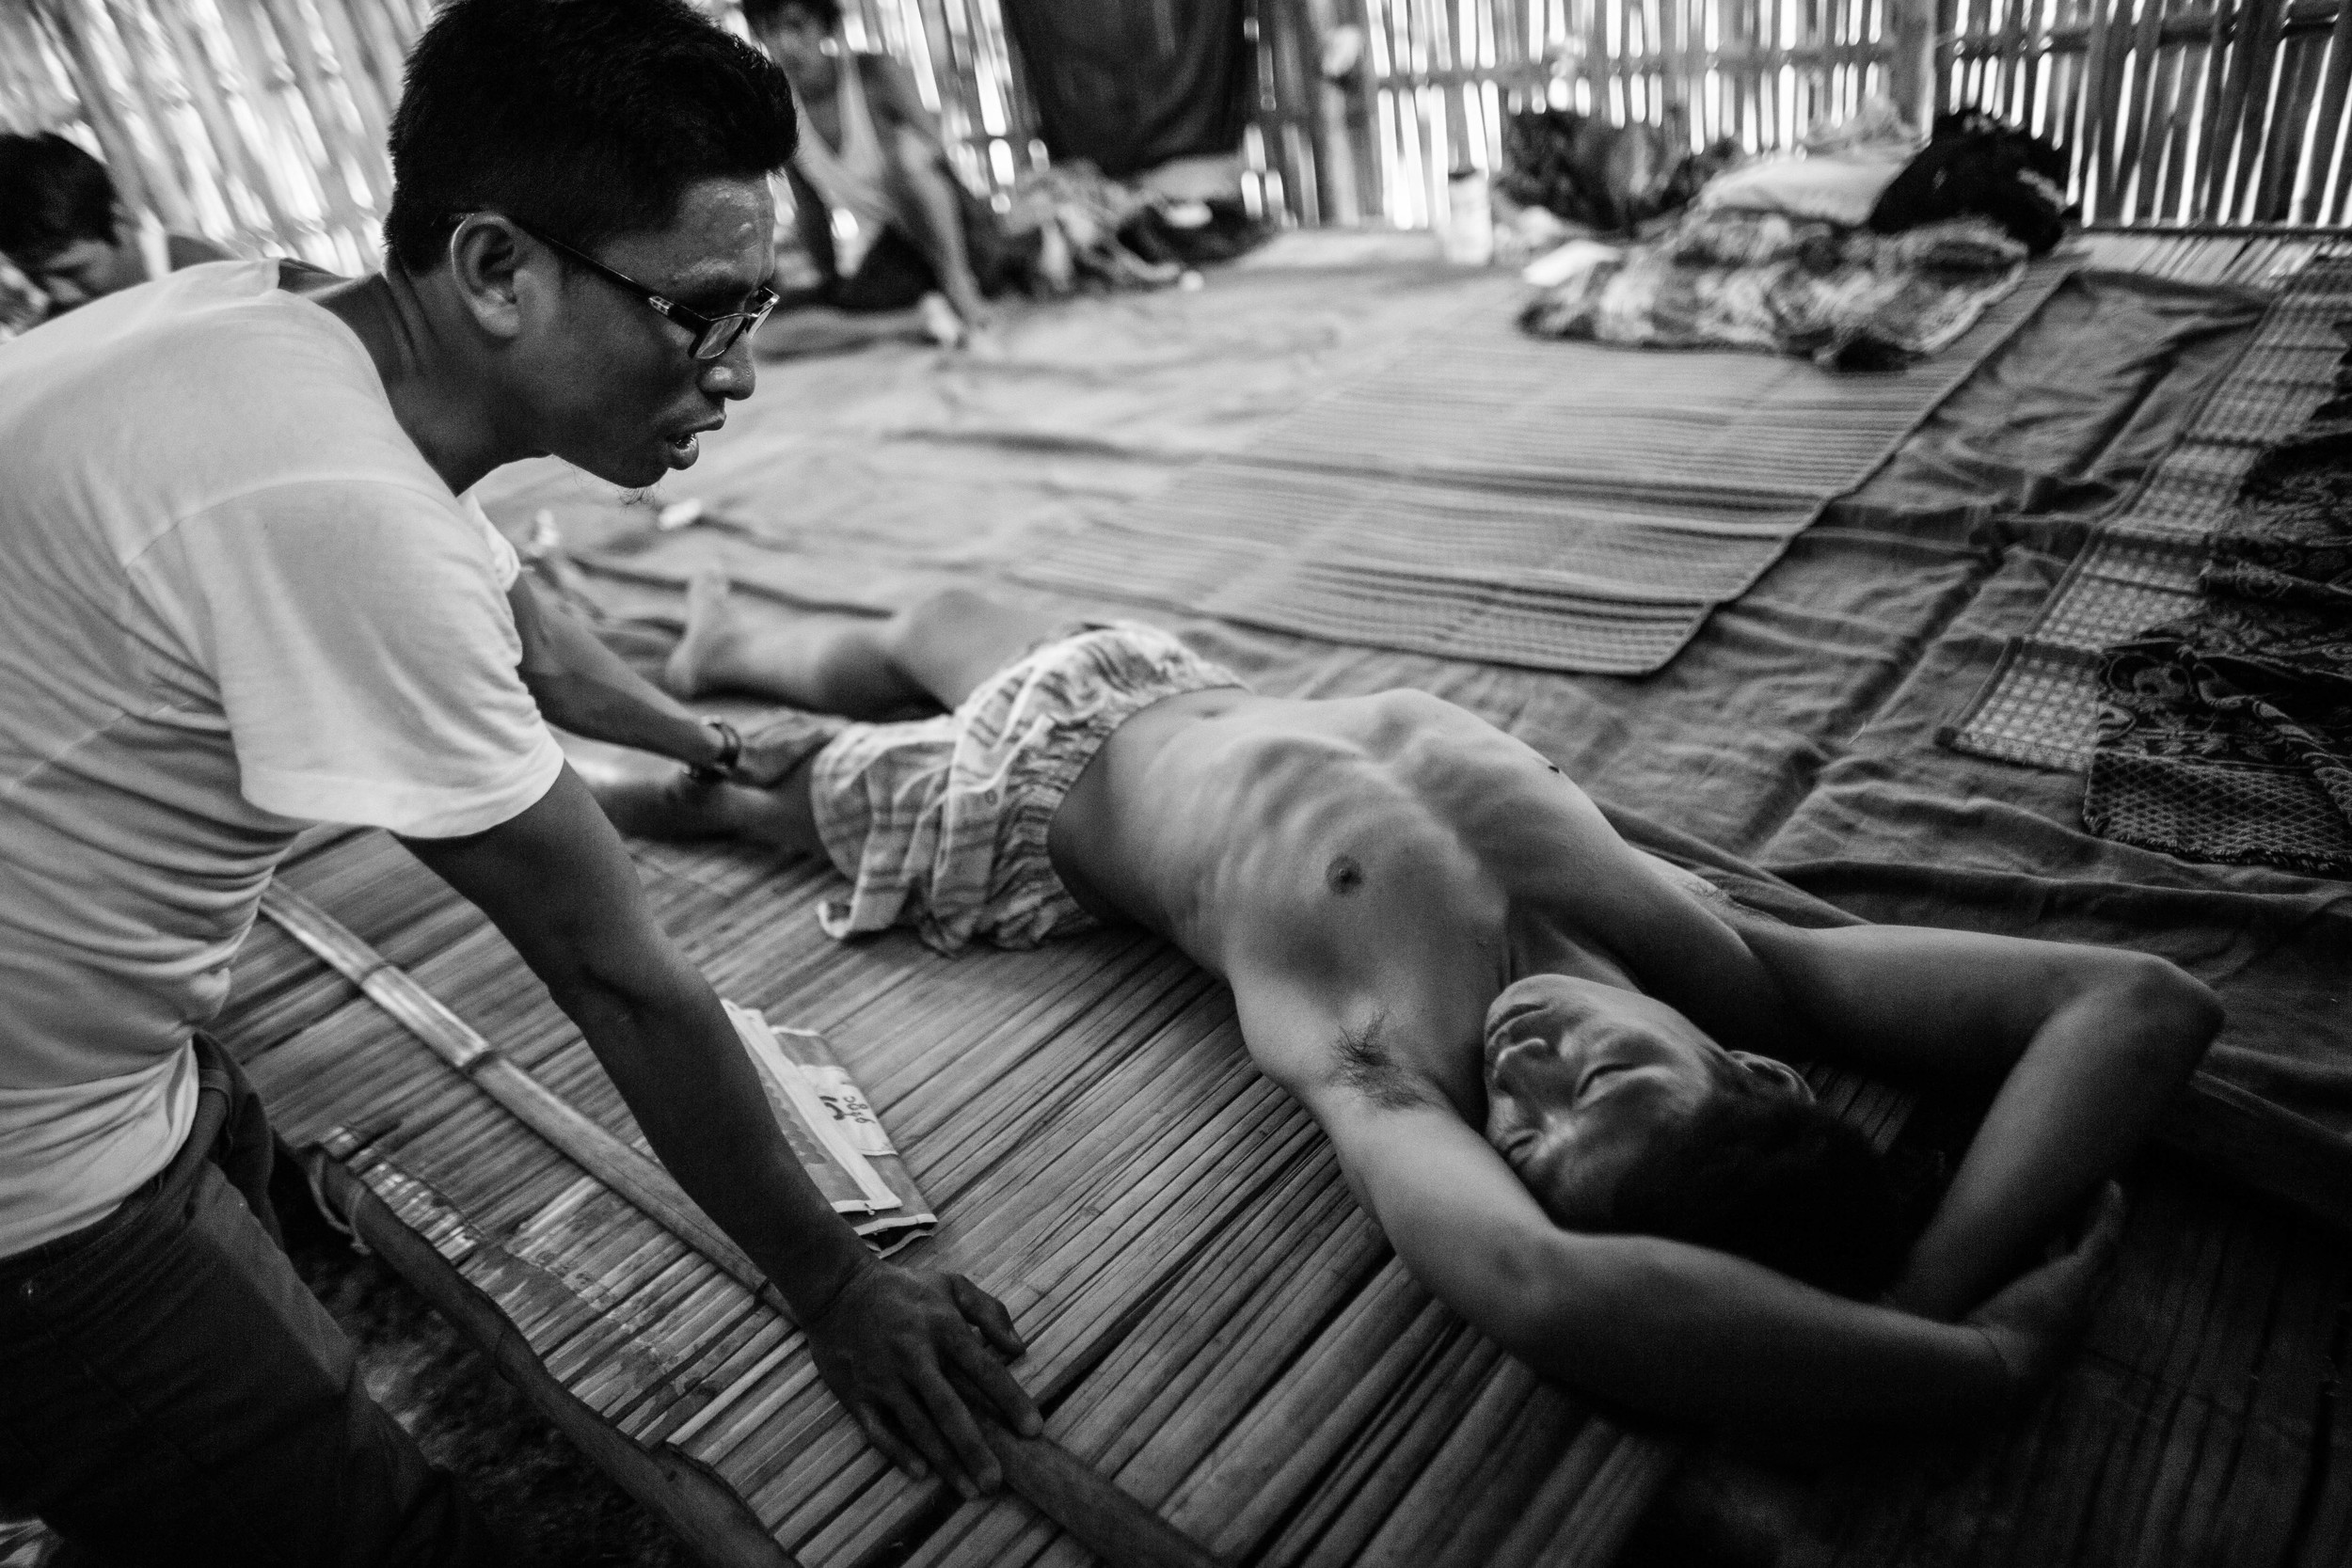 """Hkaw Zung, left, a YCC rehab center staff member talks toHkun Aung, 34. """"Hkun Aung"""" has been an addict for 16 years. This is his third day in rehab and he'sin severe pain. """"I can't do this anymore,"""" he tells the staff. Hkaw Zung himself was an addict and contracted HIV while injecting heroin."""